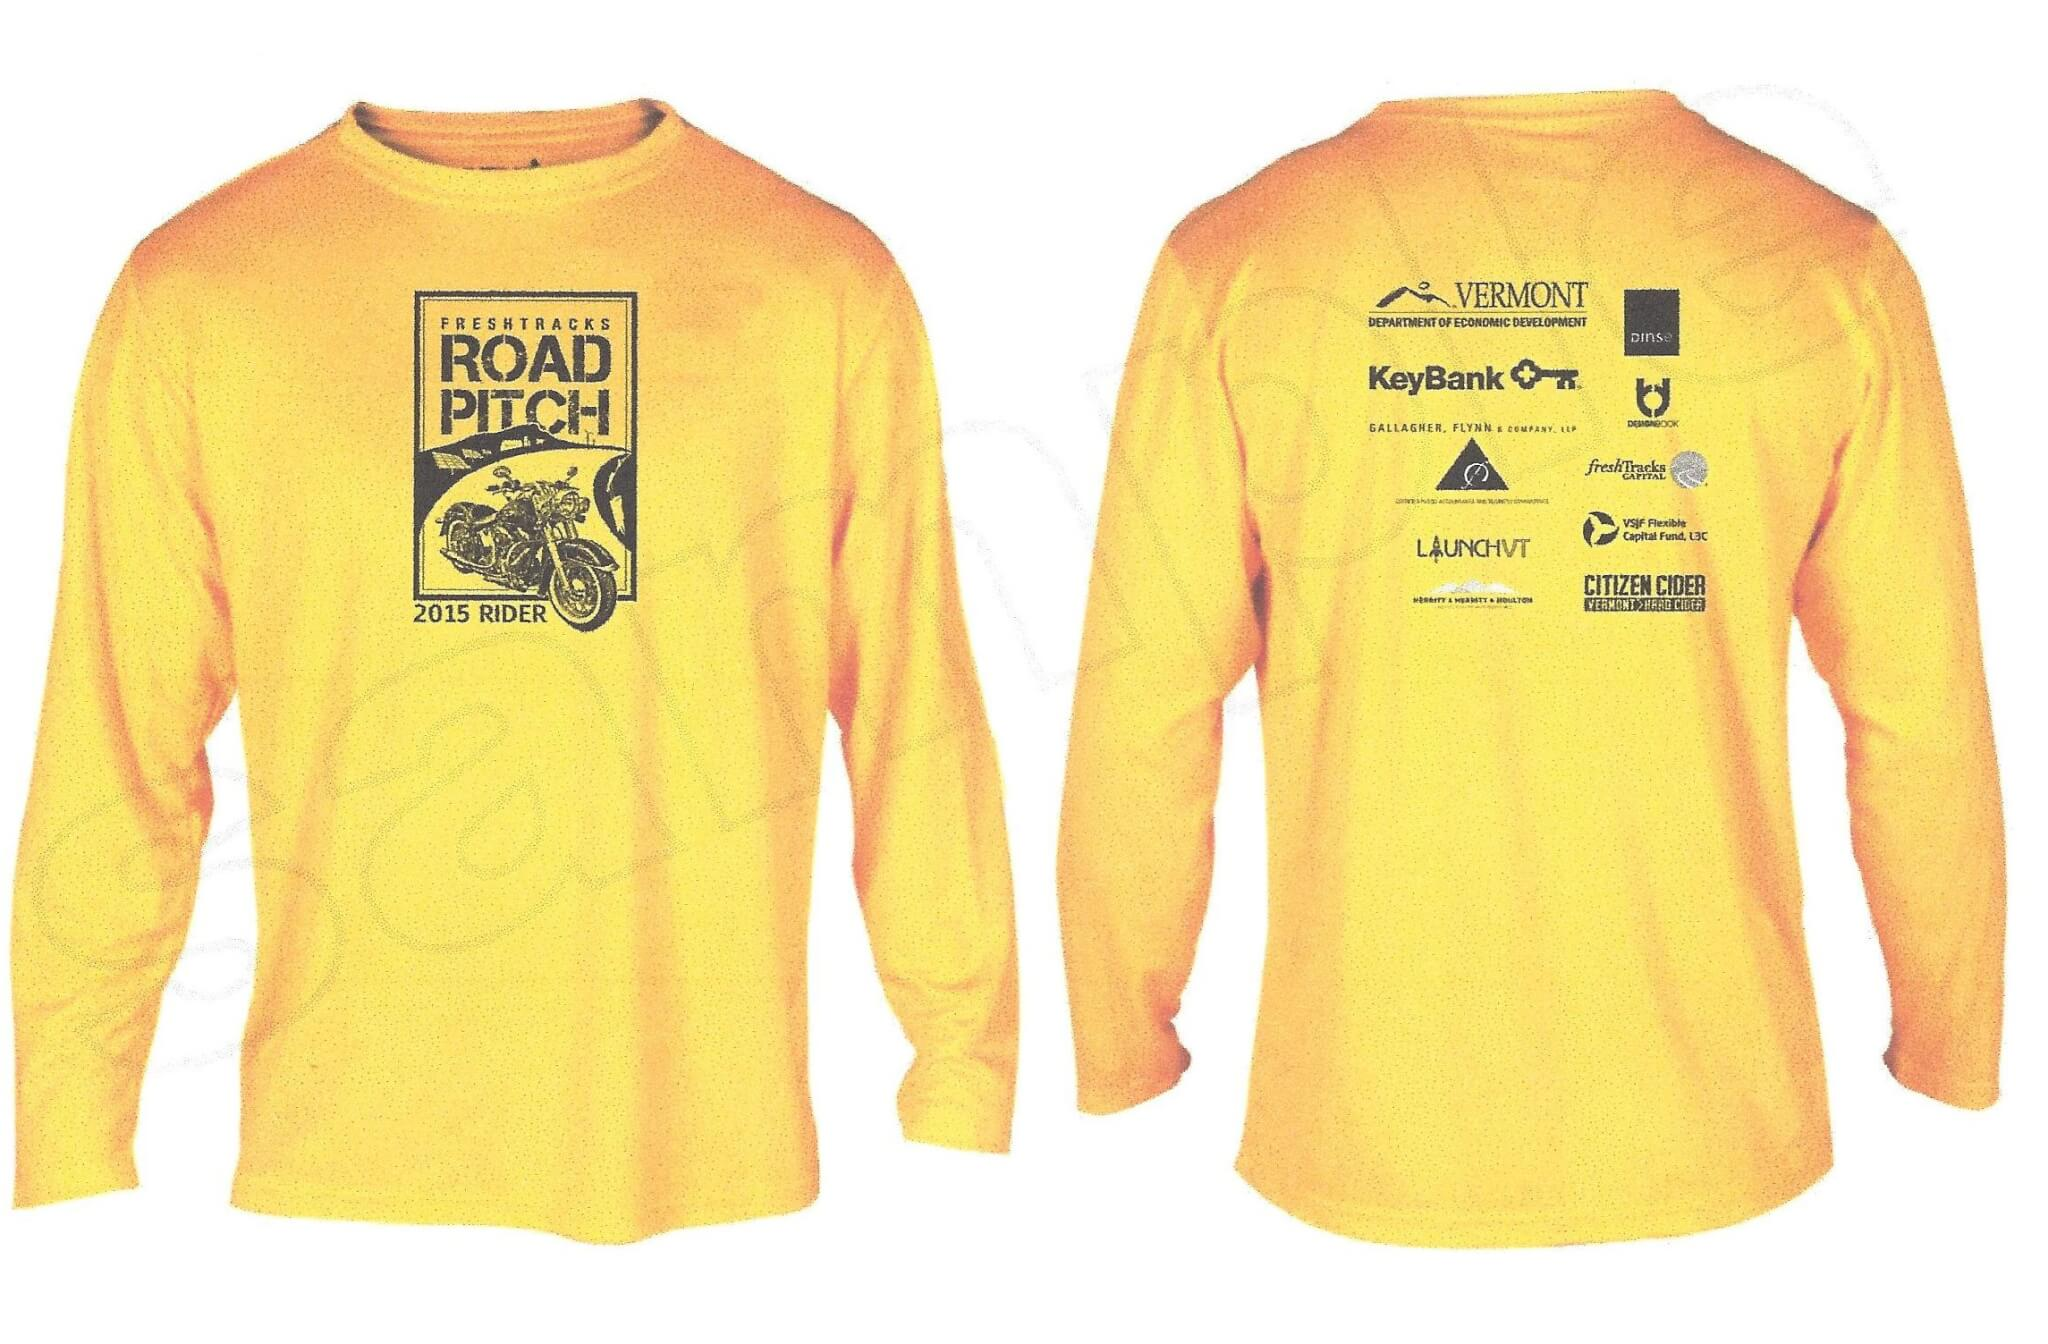 Road Pitch branded yellow long-sleeve T-shirts